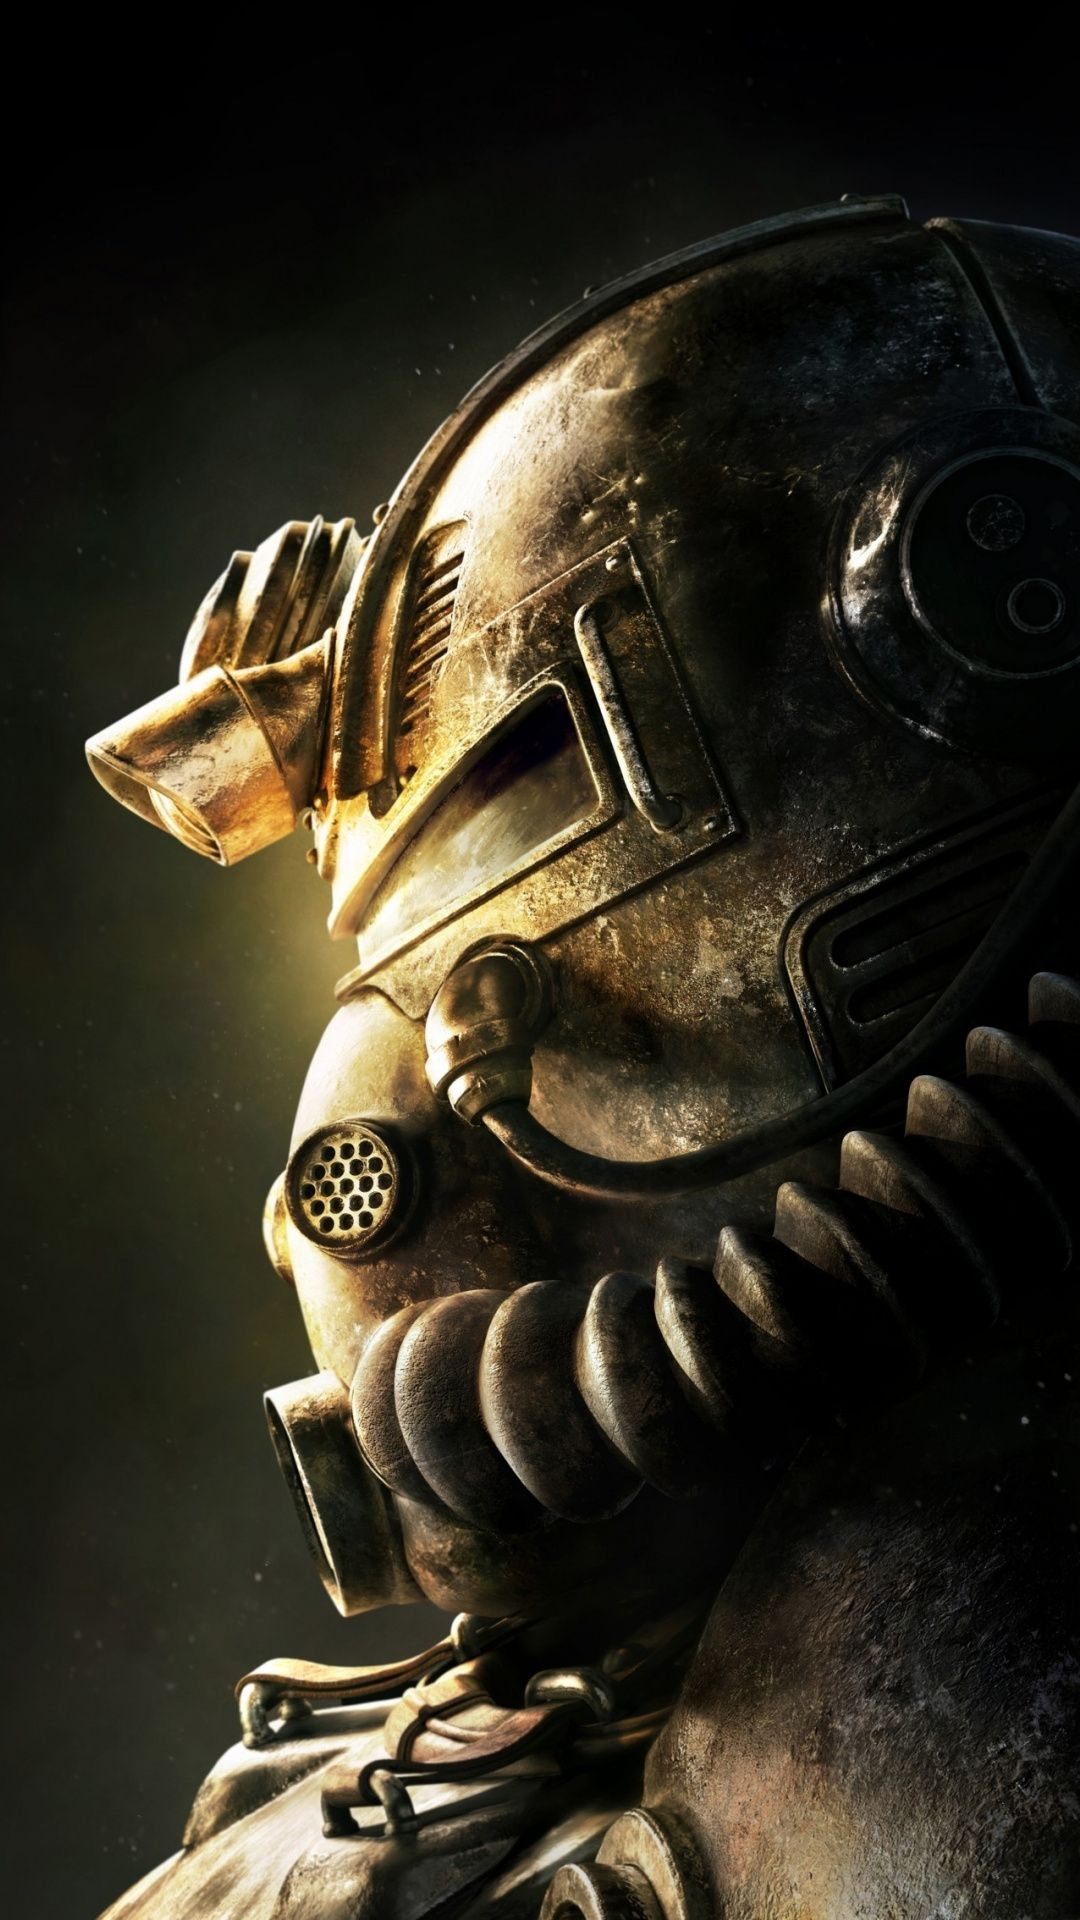 Video Game Fallout 76 Iron Suit 1080x1920 Wallpaper Fallout